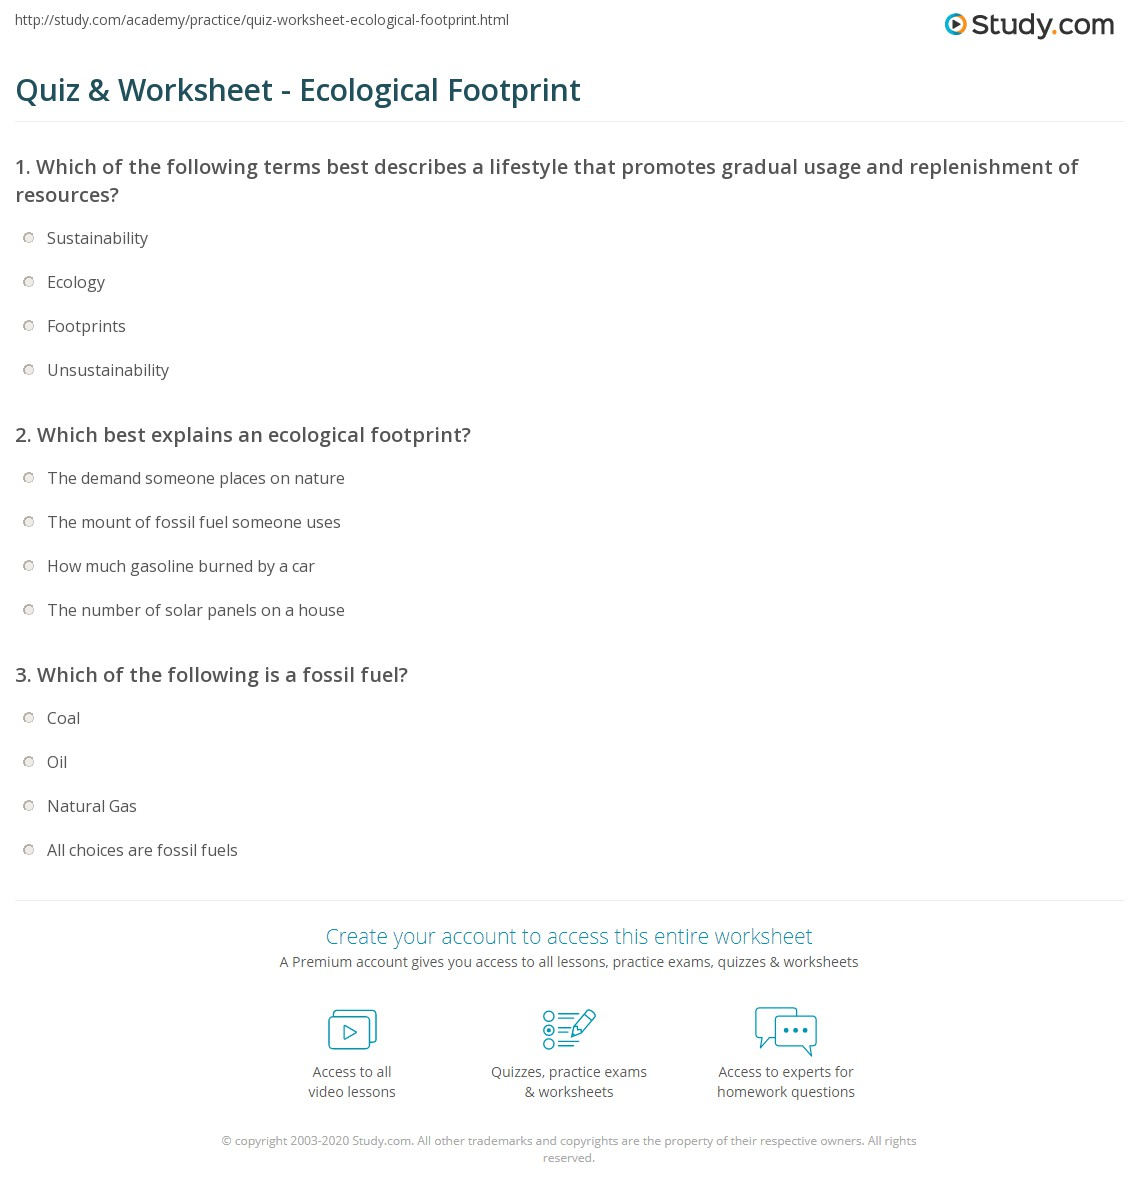 quiz & worksheet - ecological footprint | study